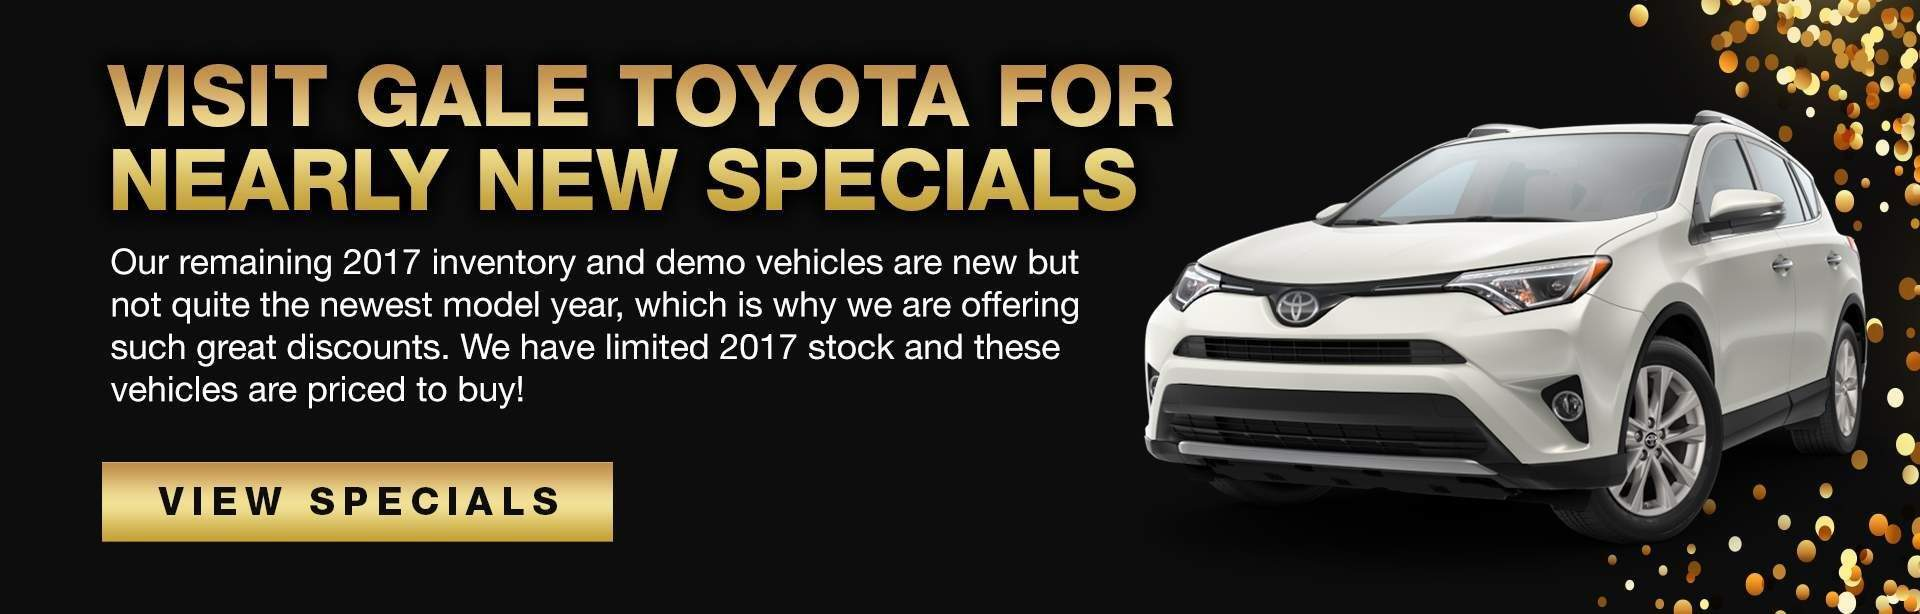 Visit Gale Toyota for Nearly New Specials